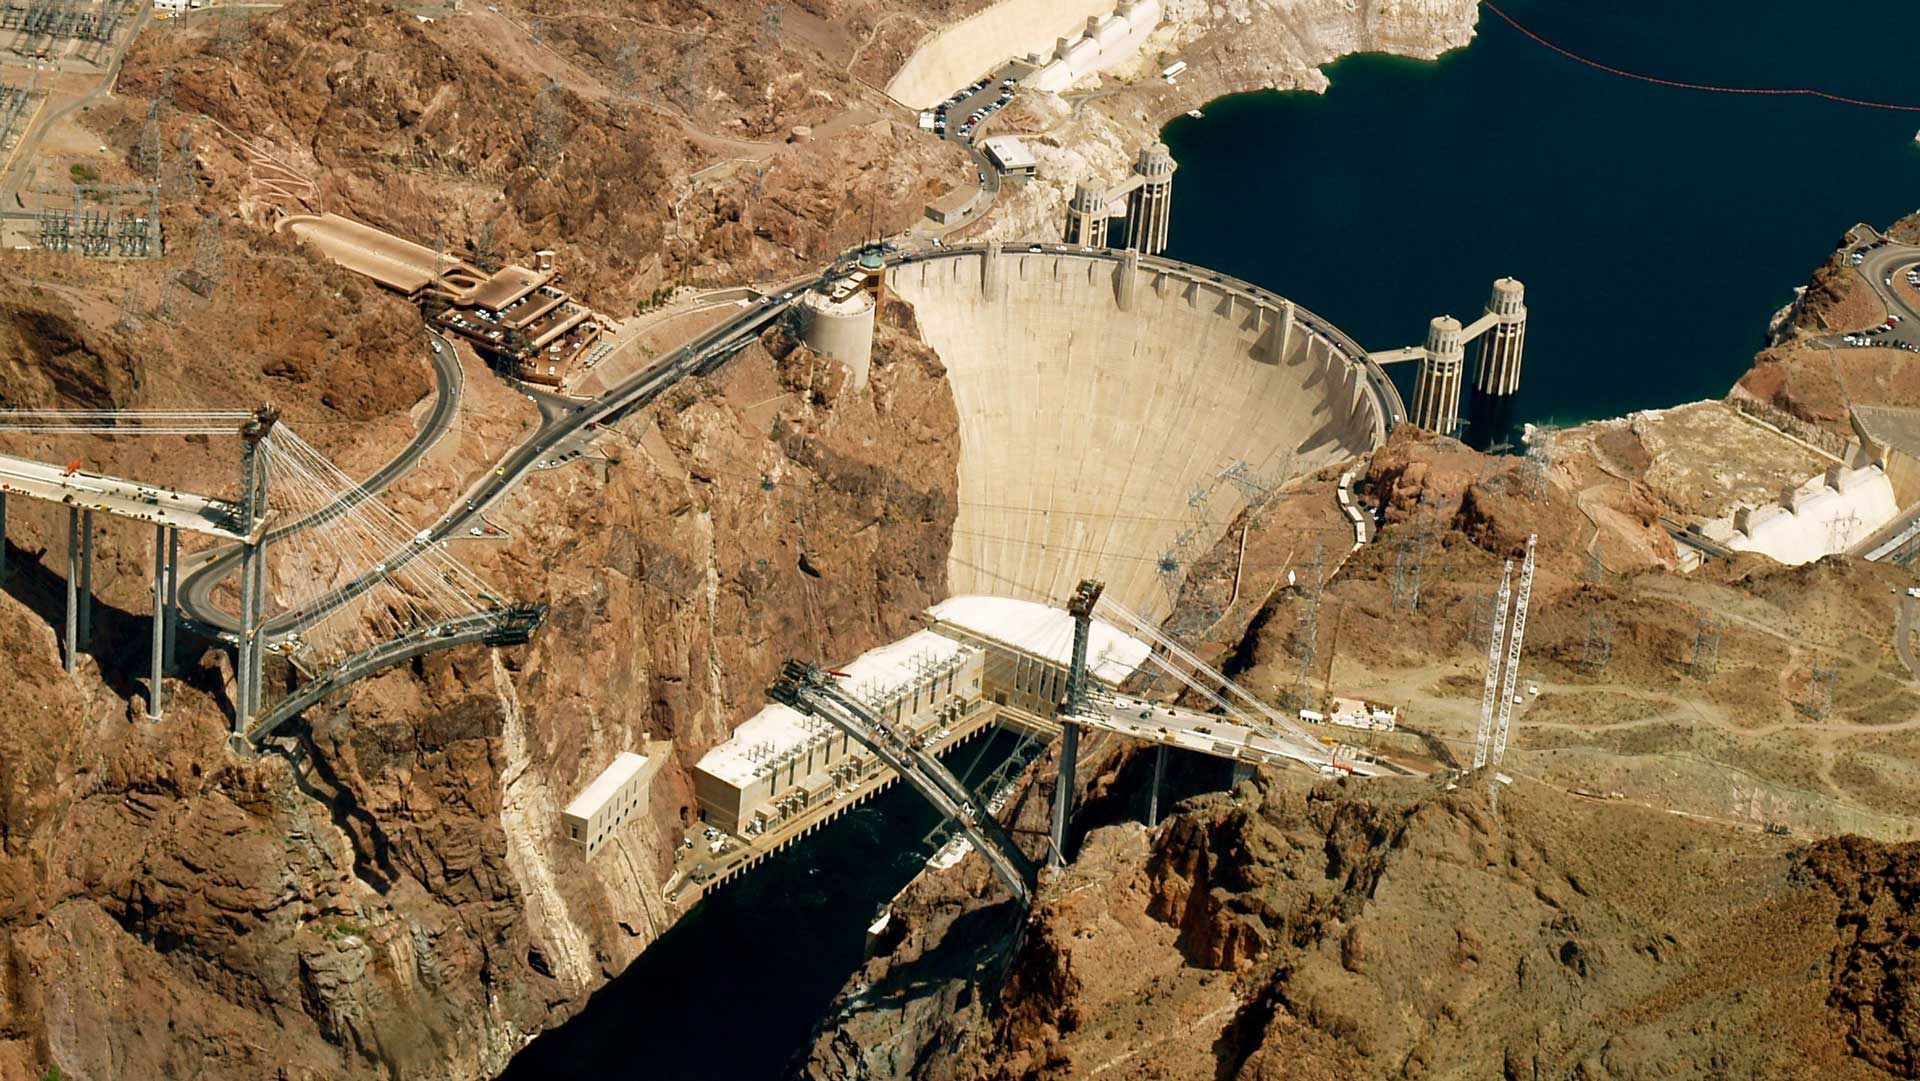 Hoover Dam, from the air